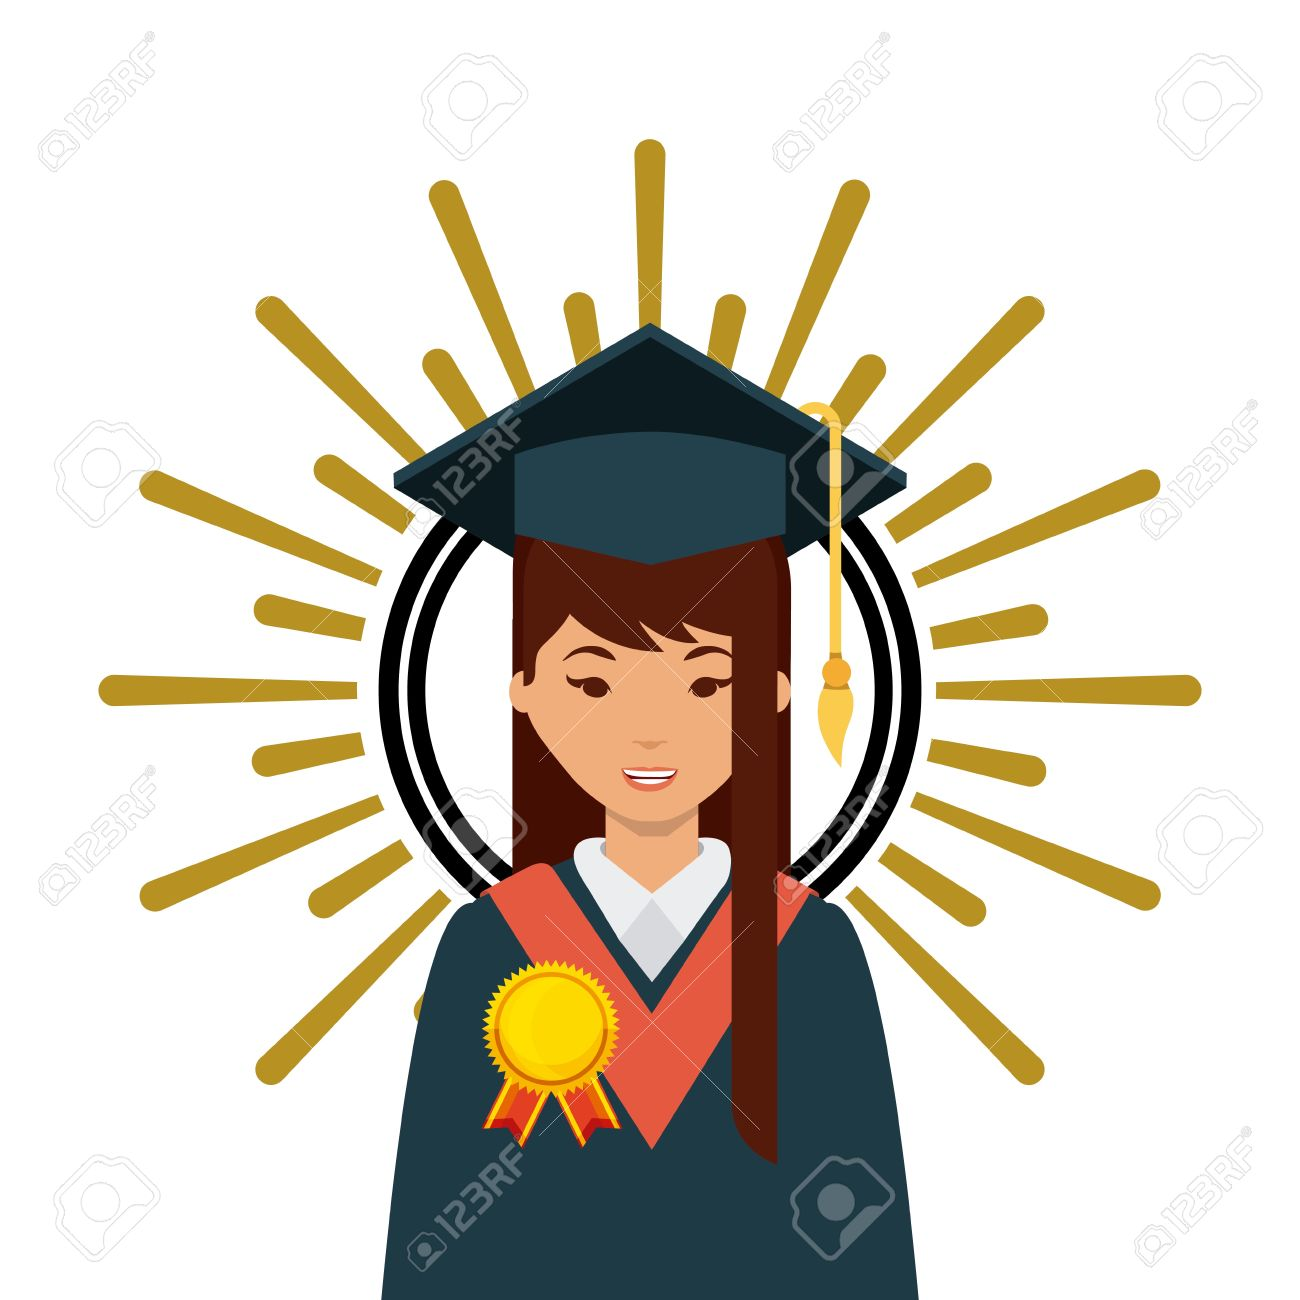 Cartoon Graduate Woman With Graduation Gown And Hat Icon Over ...